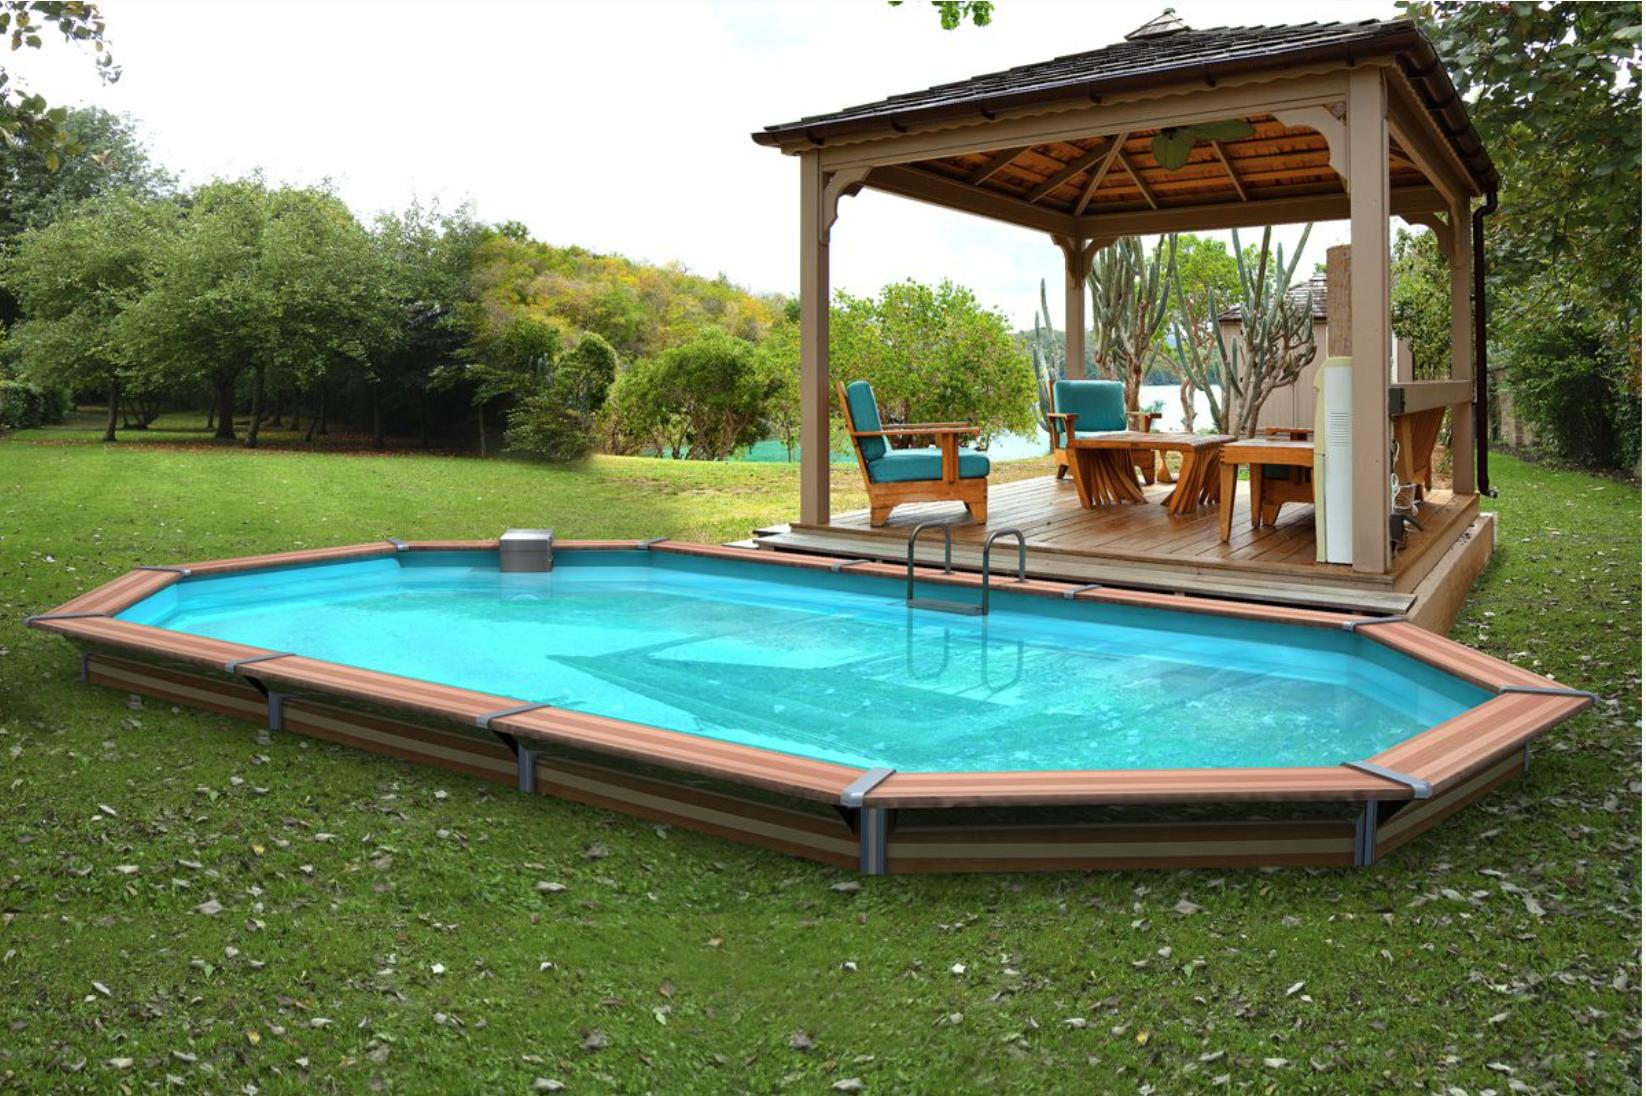 Piscine bois siayan 730x420x129cm for Piscine bois enterrable